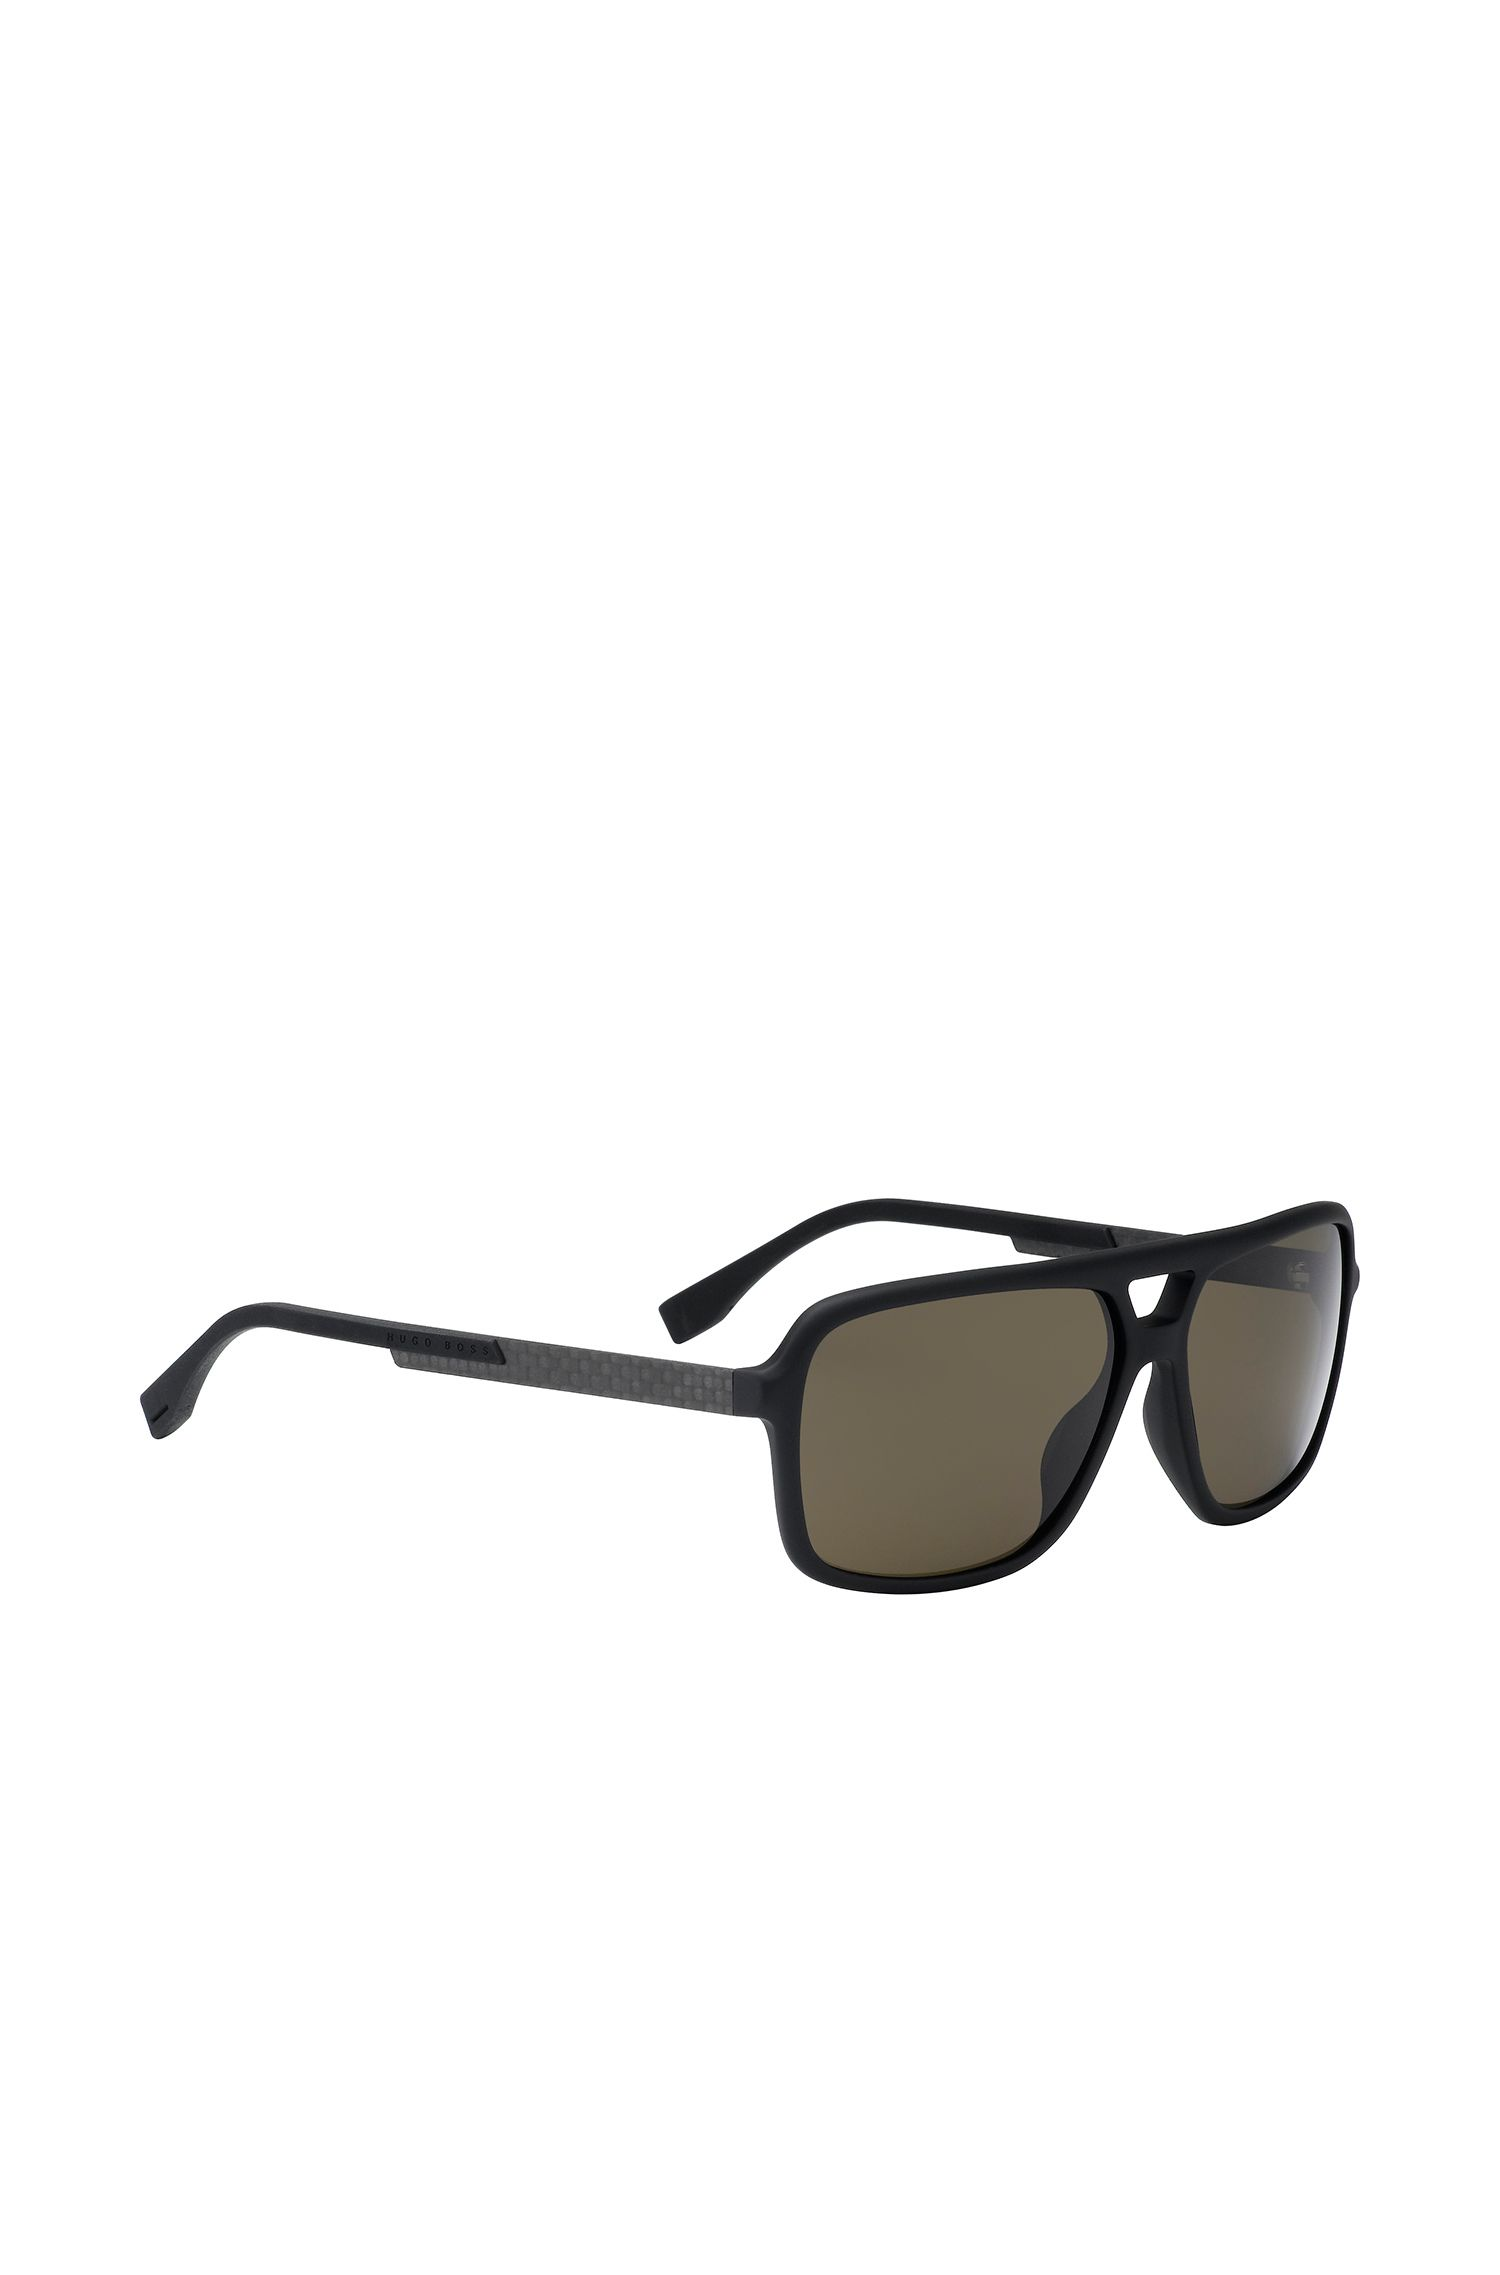 Brown Grey Lens Navigator Sunglasses | BOSS 0772S